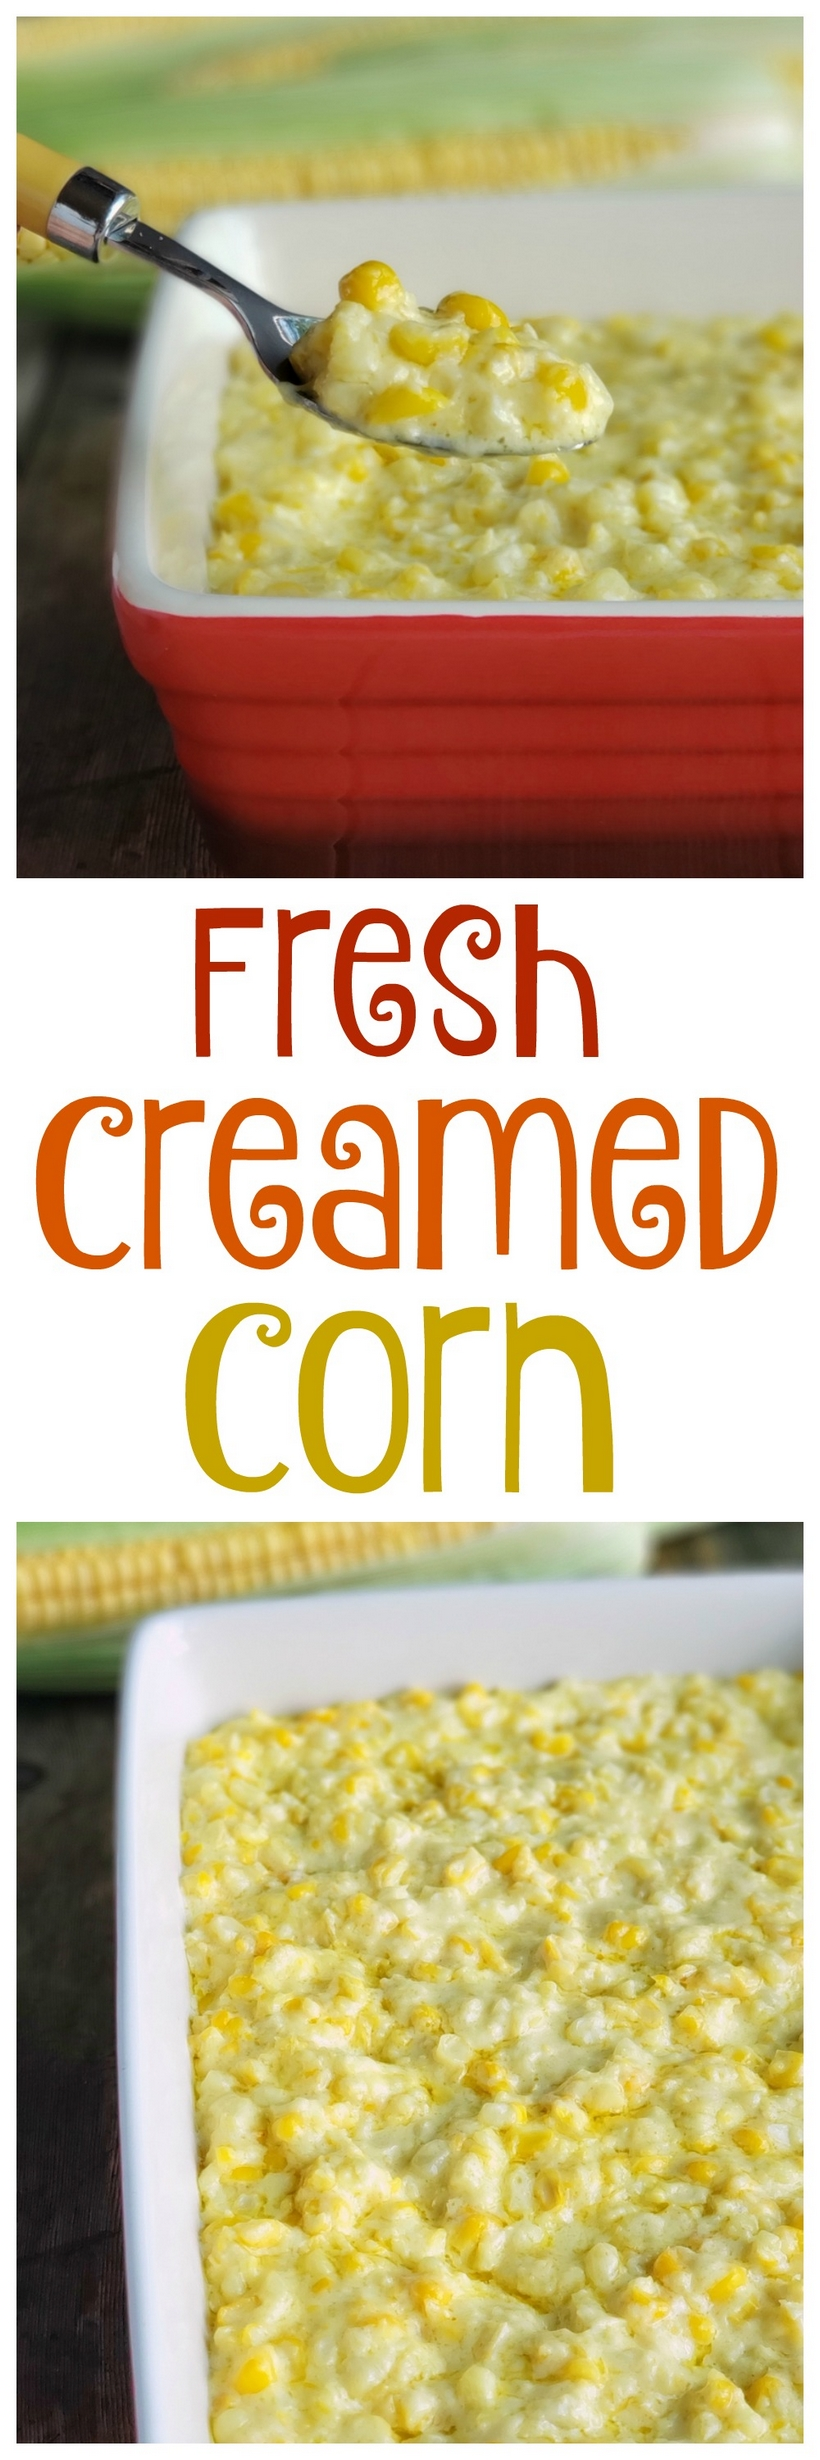 Take full advantage of sweet summer corn and make of batch of this delicious Fresh Creamed Corn. This classic American side dish will be a hit at your next barbecue. #creamedcorn via @cmpollak1